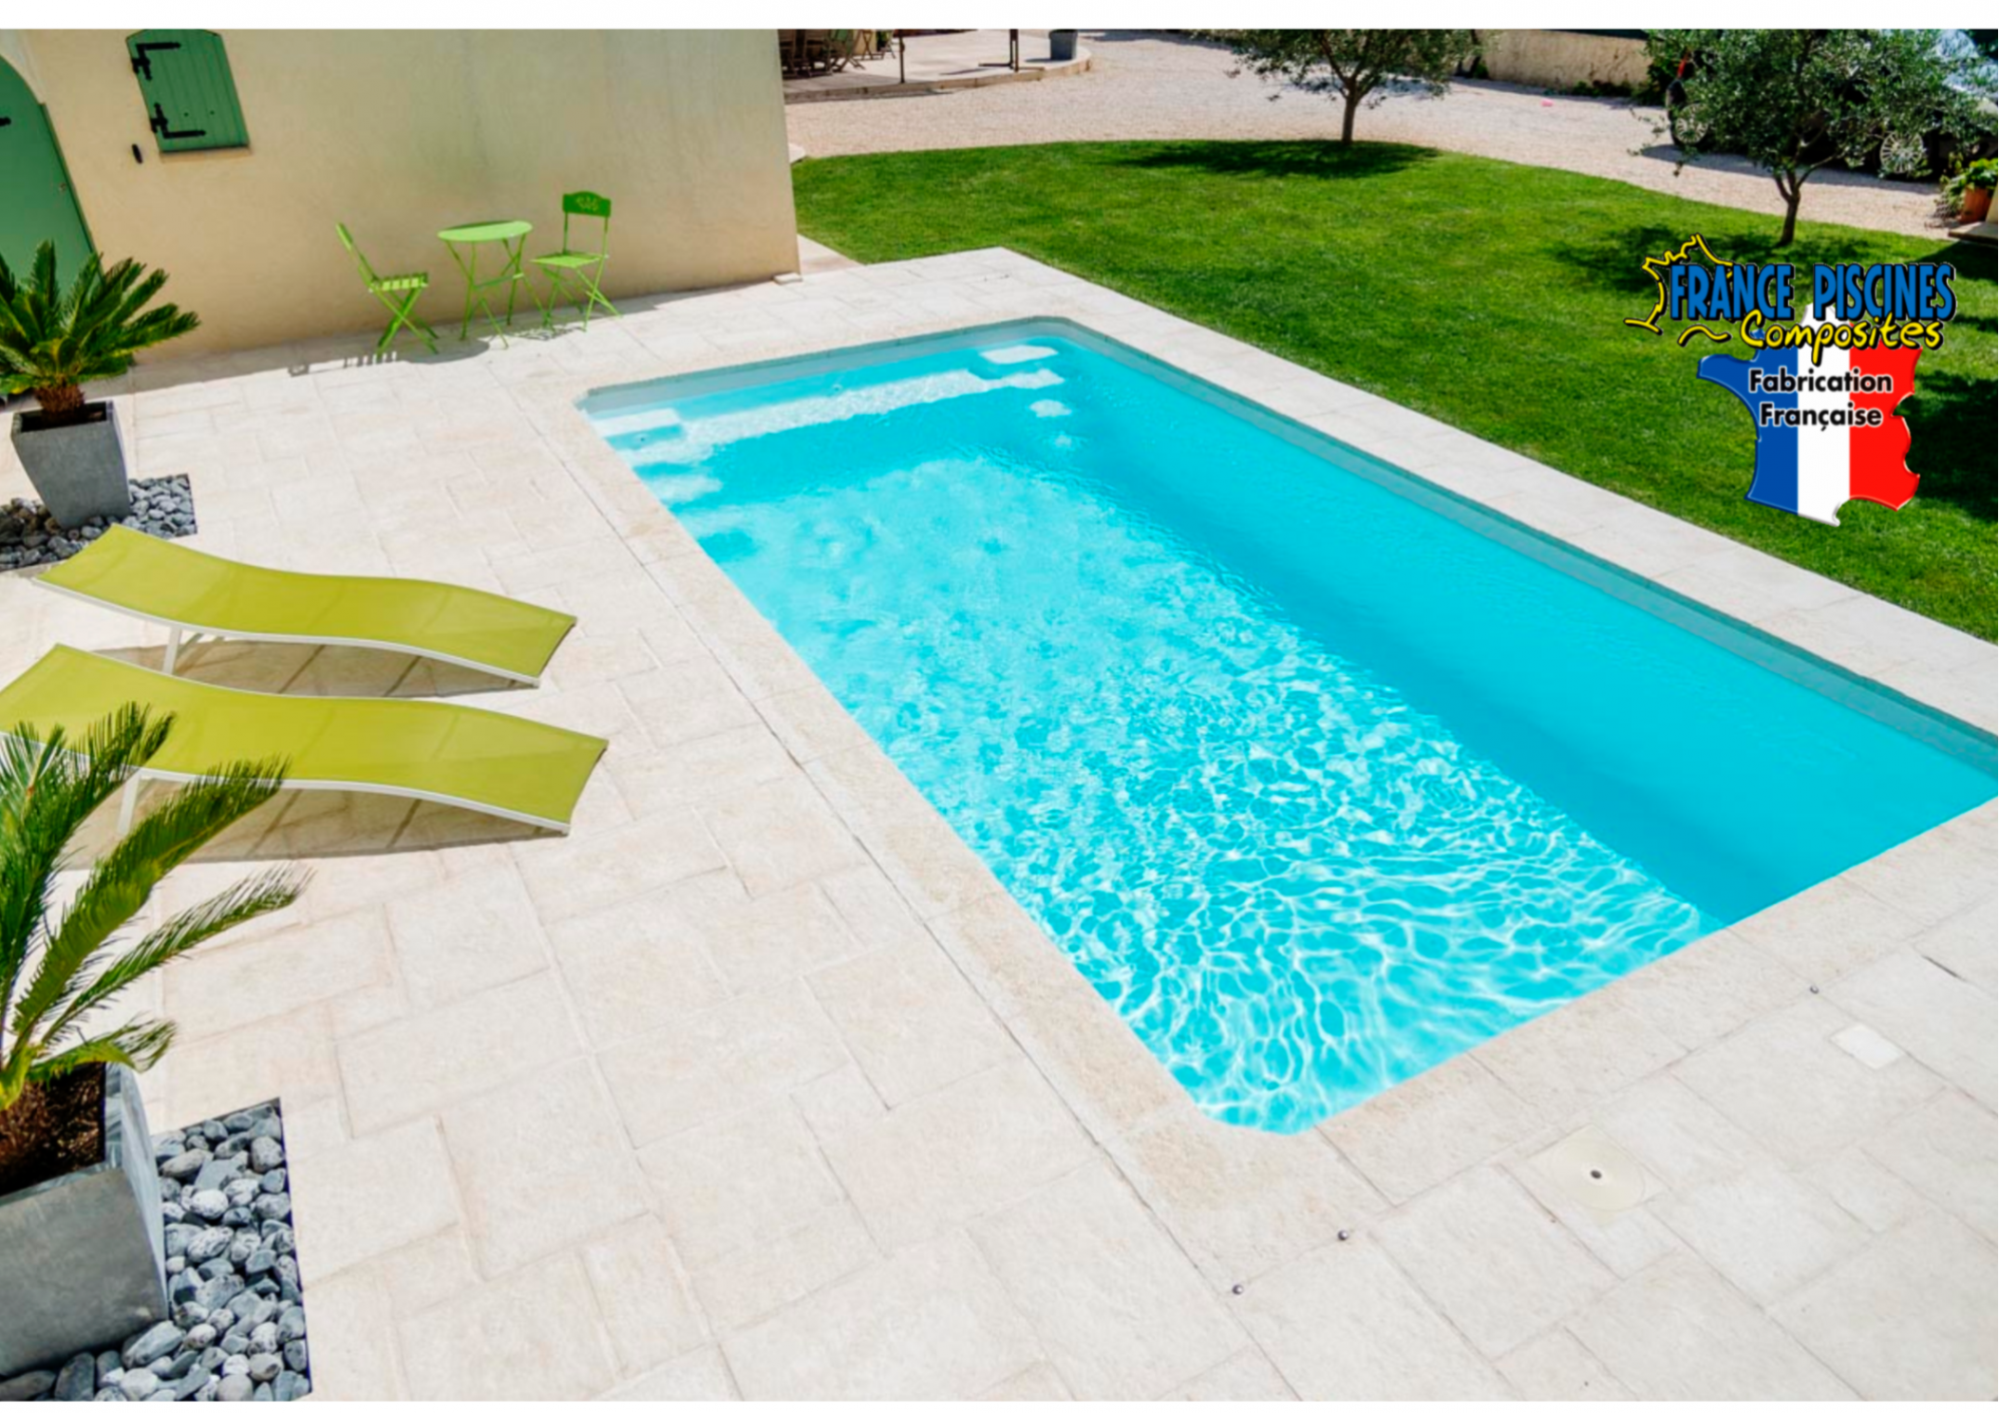 Installation de piscine enterr e nice 06 piscine for Piscine 9x4 prix